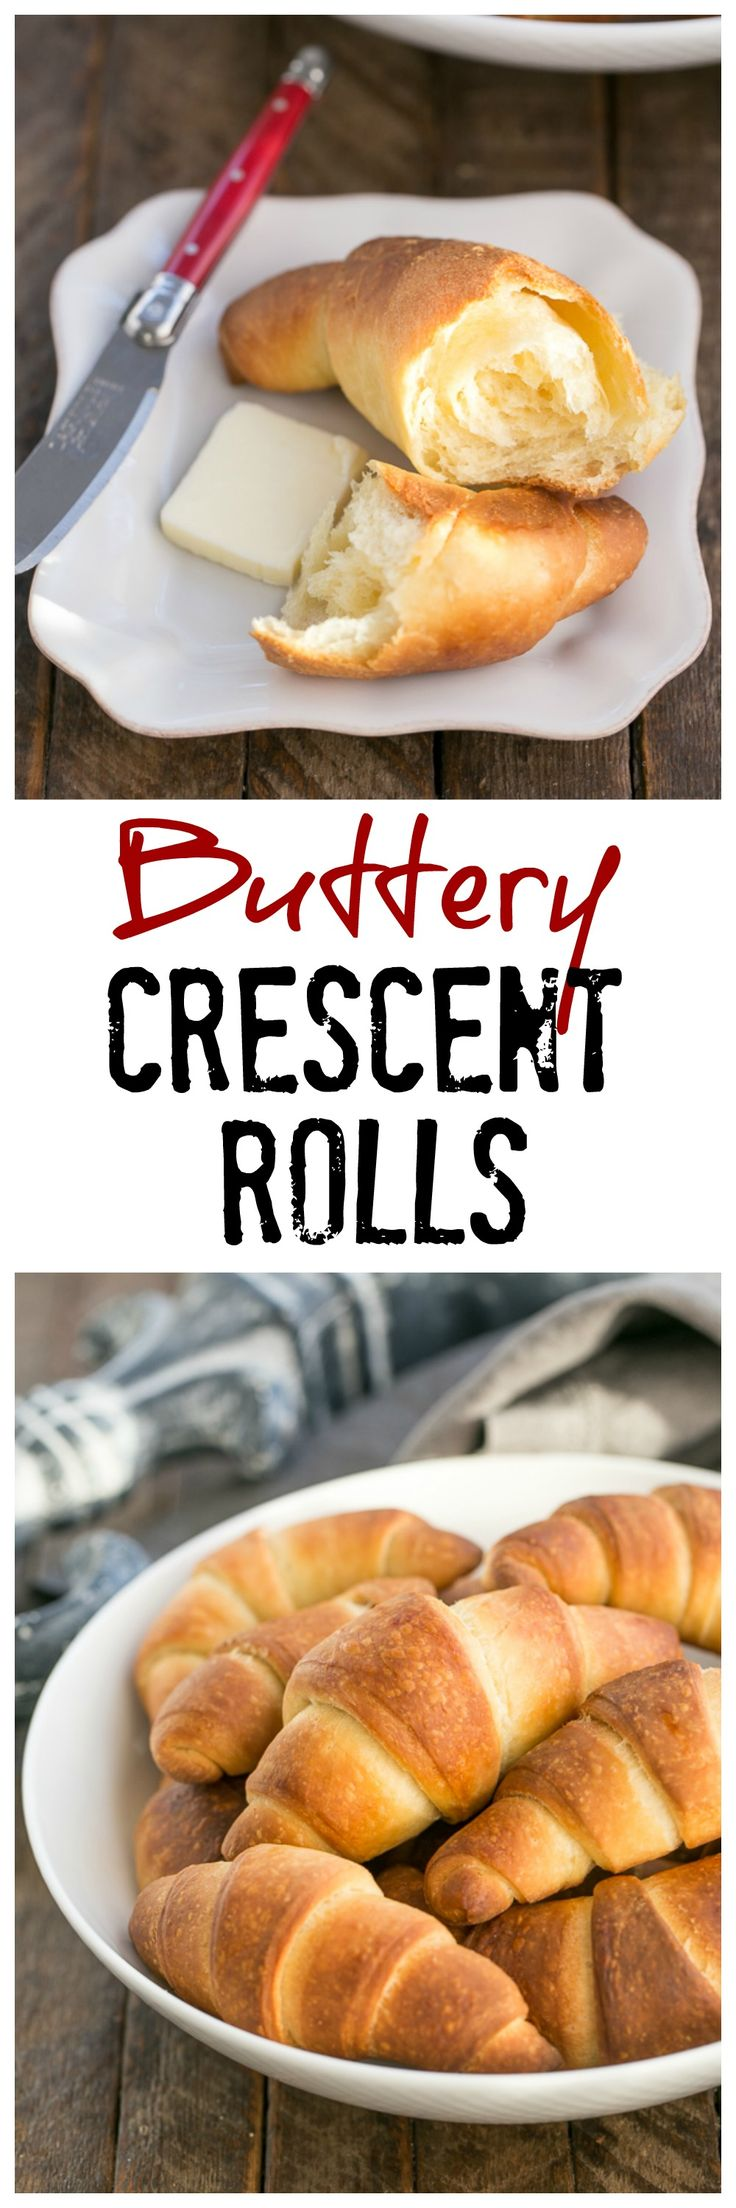 Buttery Homemade Crescent Rolls | Tender, flaky yeast rolls! @lizzydo